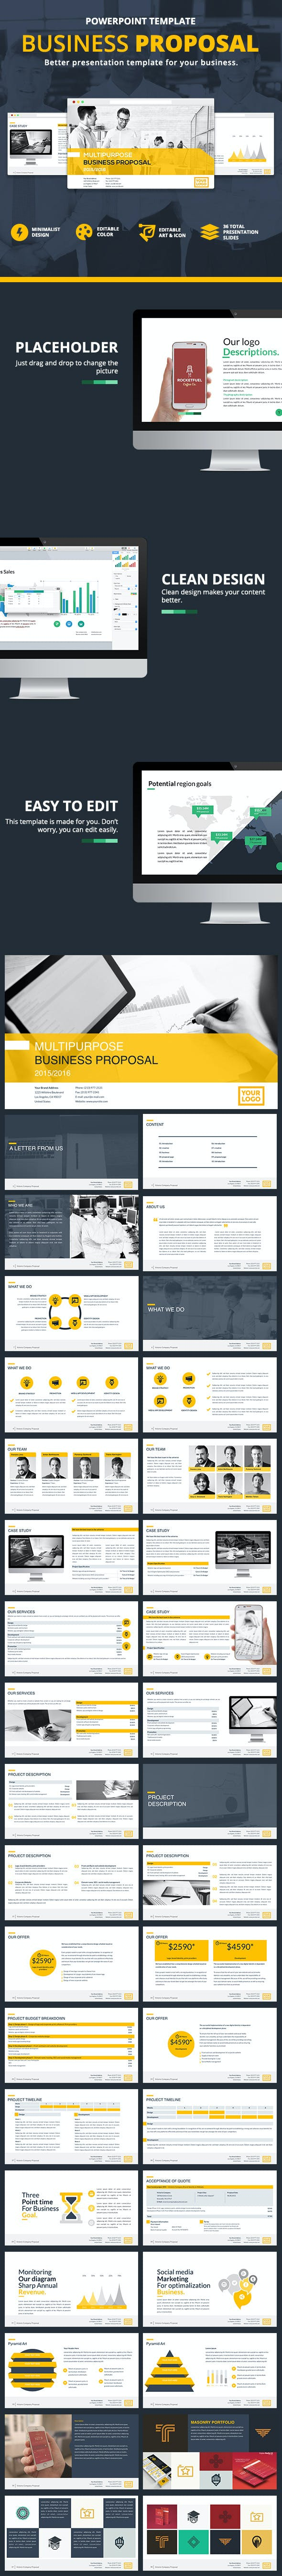 business proposal presentation by atsar graphicriver